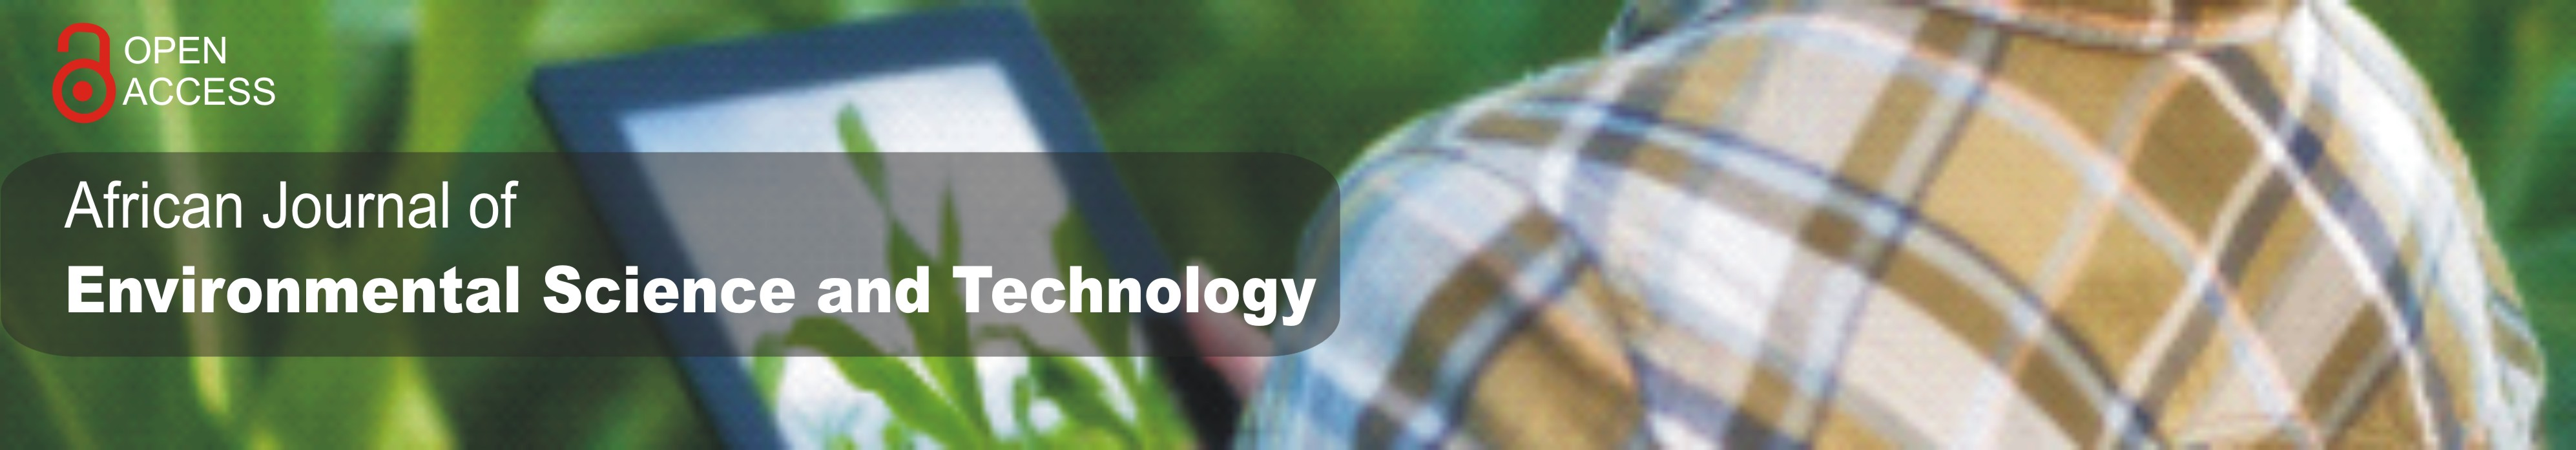 African Journal of Environmental Science and Technology